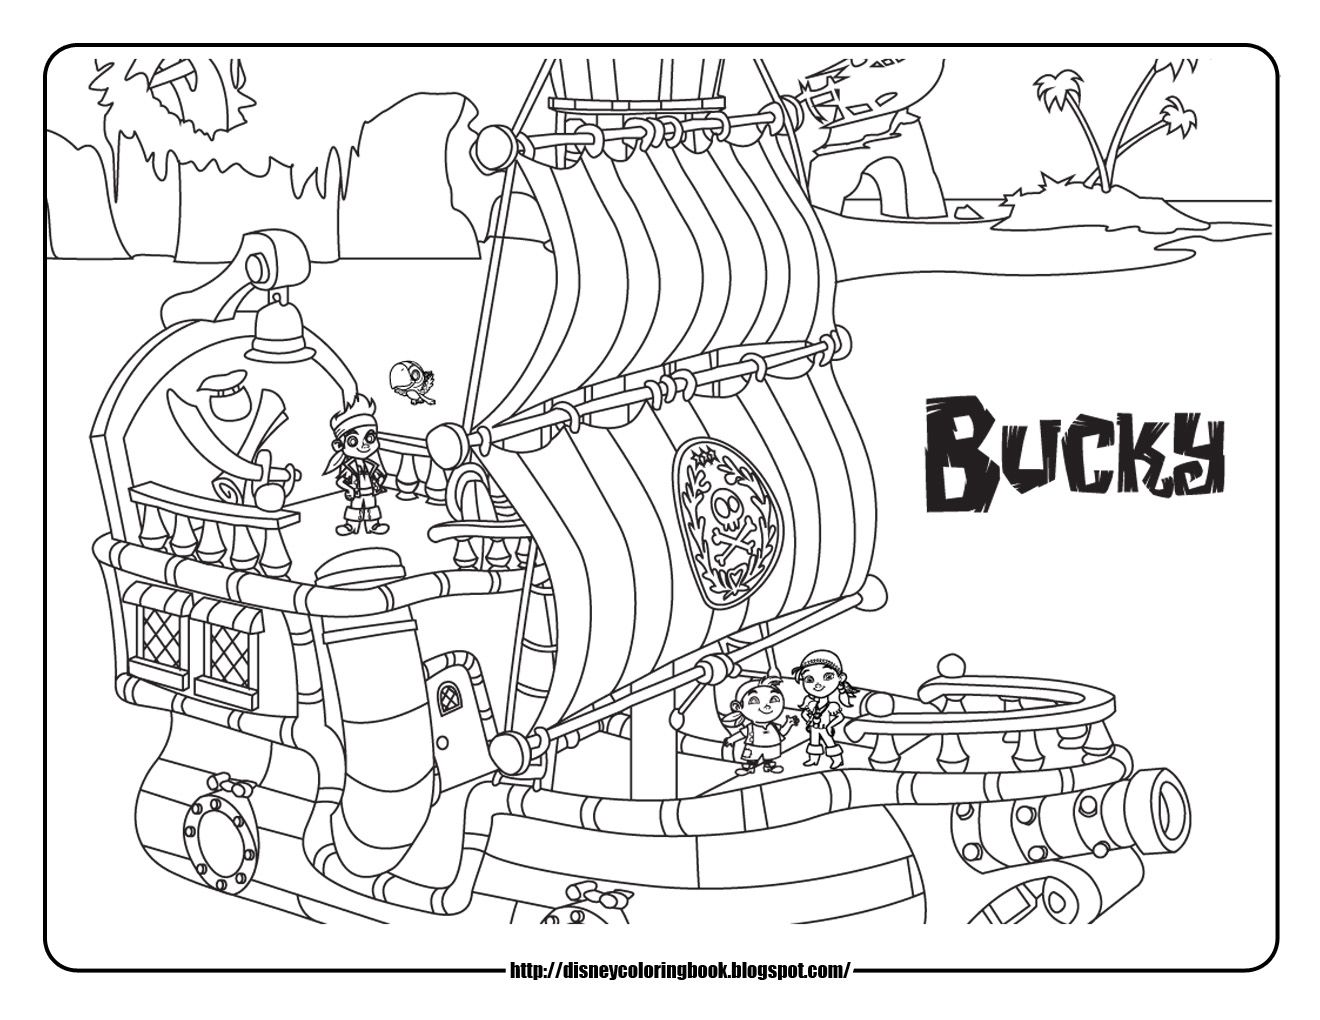 Pirate colouring pages to print - Jake And The Never Land Pirates Pirate Ship Coloring Pages Bucky